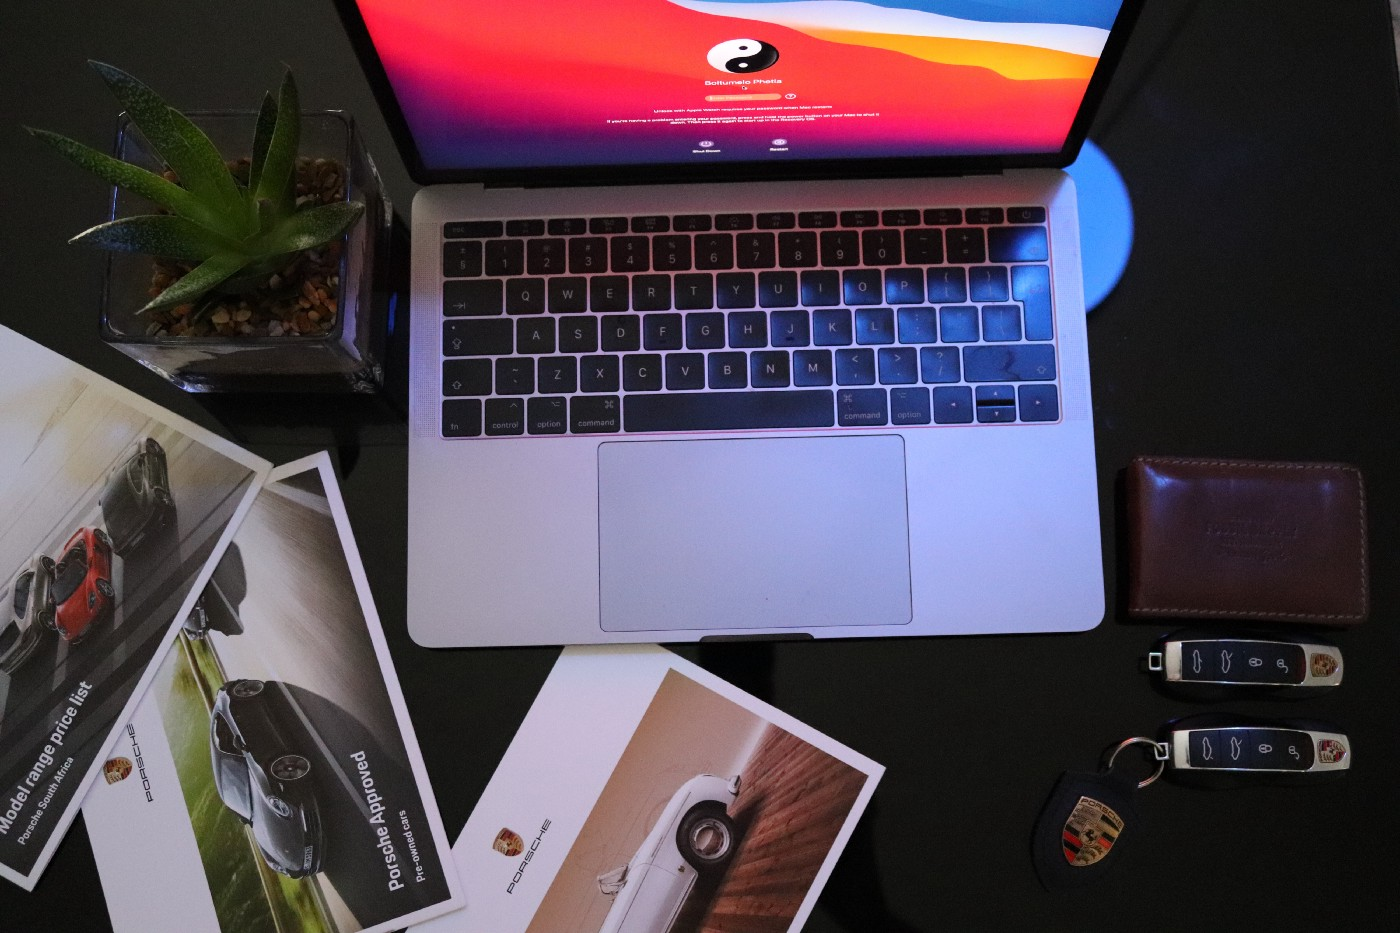 An open laptop surrounded by photos of cars